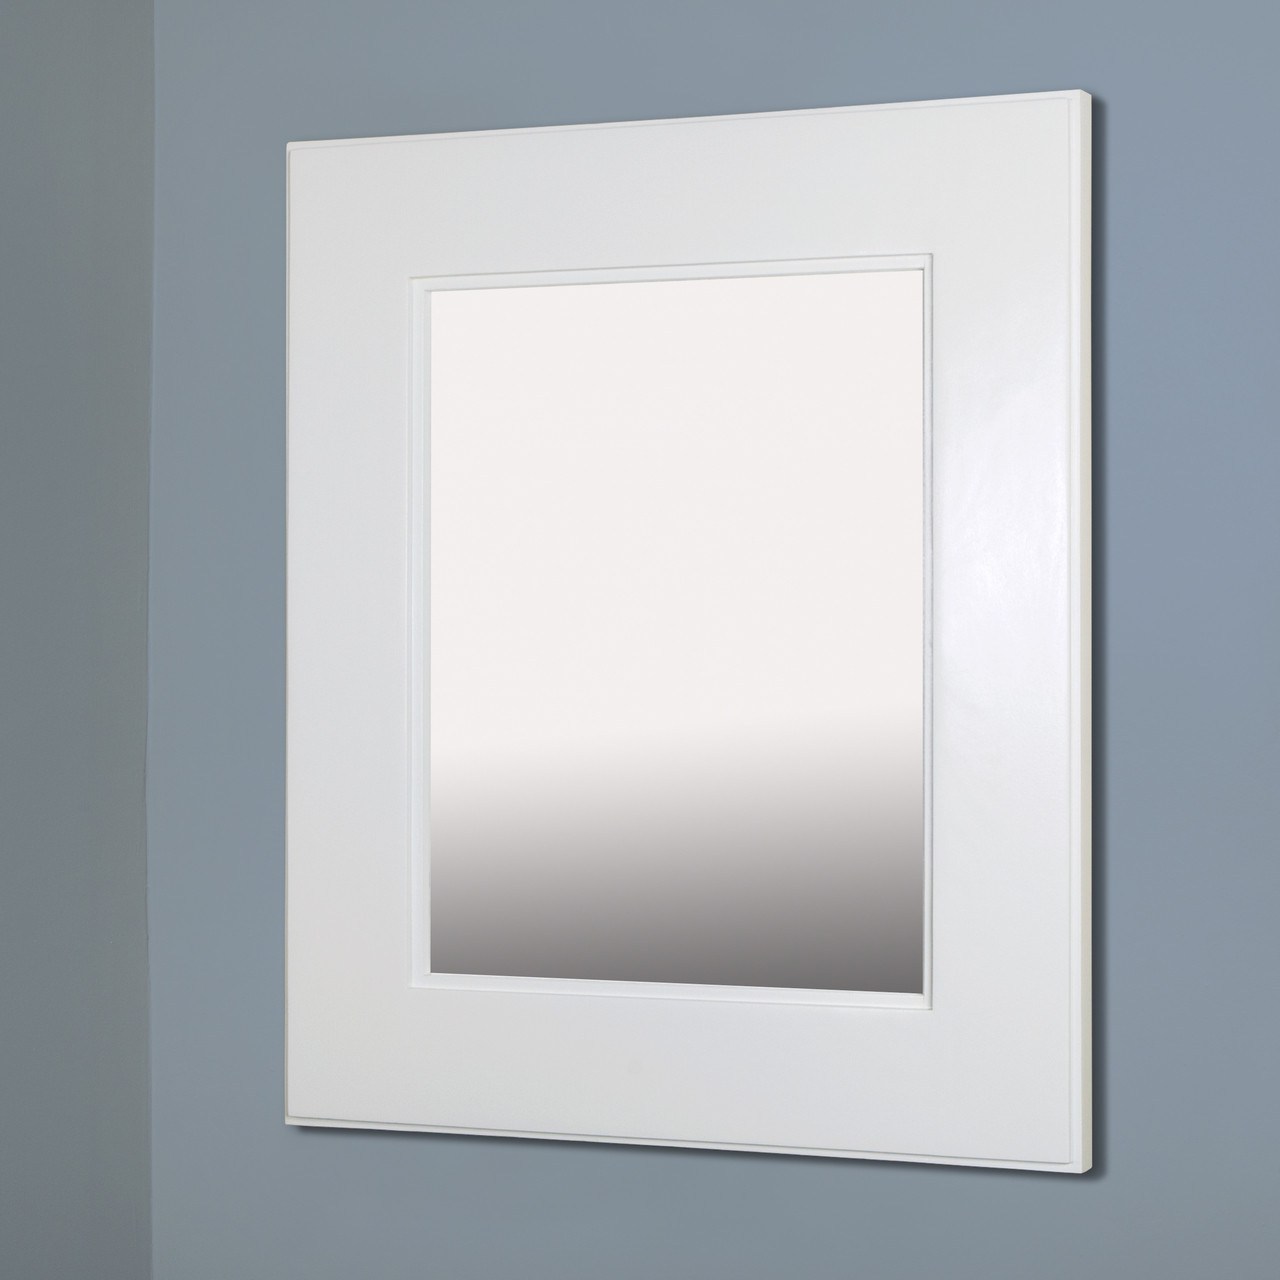 Large White Concealed Cabinet Recessed In Wall Medicine Cabinets